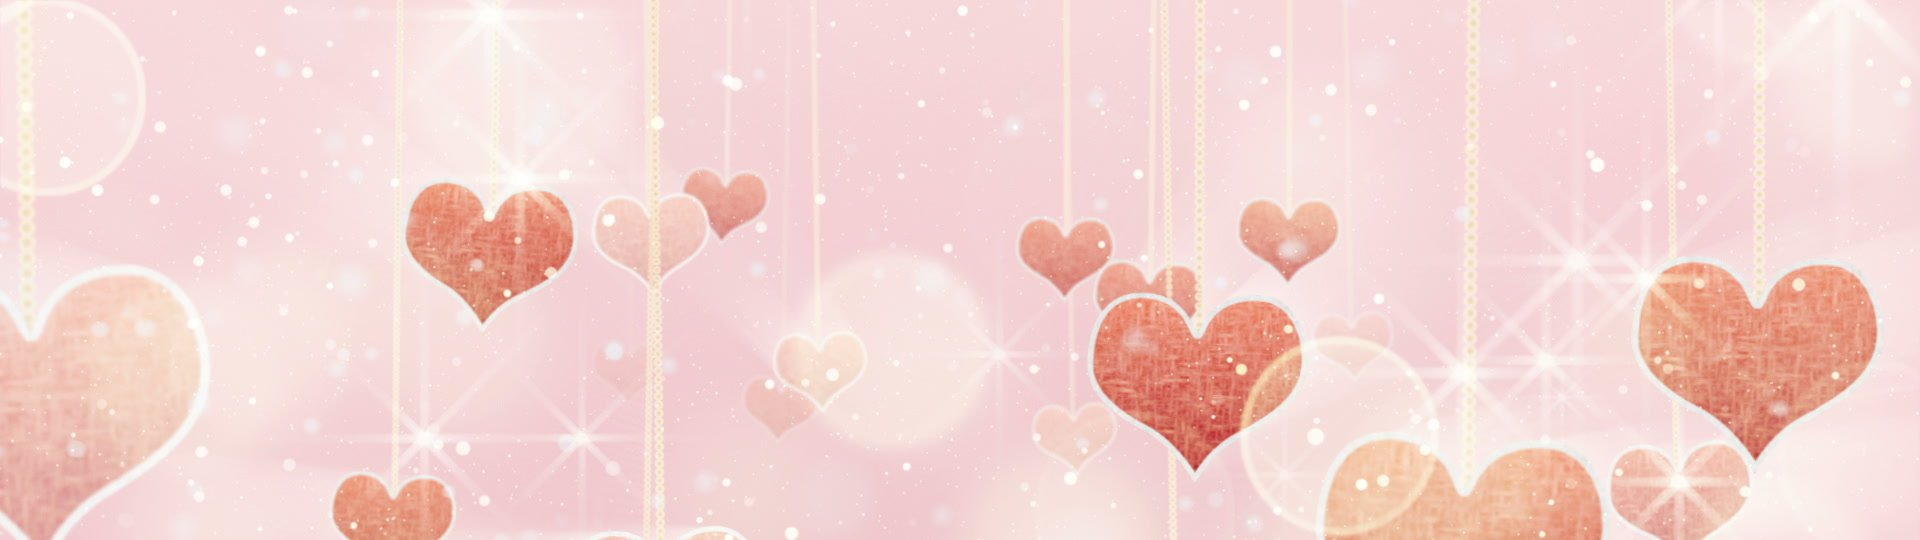 Pink hearts dangling on strings and glares loop | pink hearts dangling on strings and glares. computer generated seamless loop love motion background. HD 1080 progressive - ID:12852